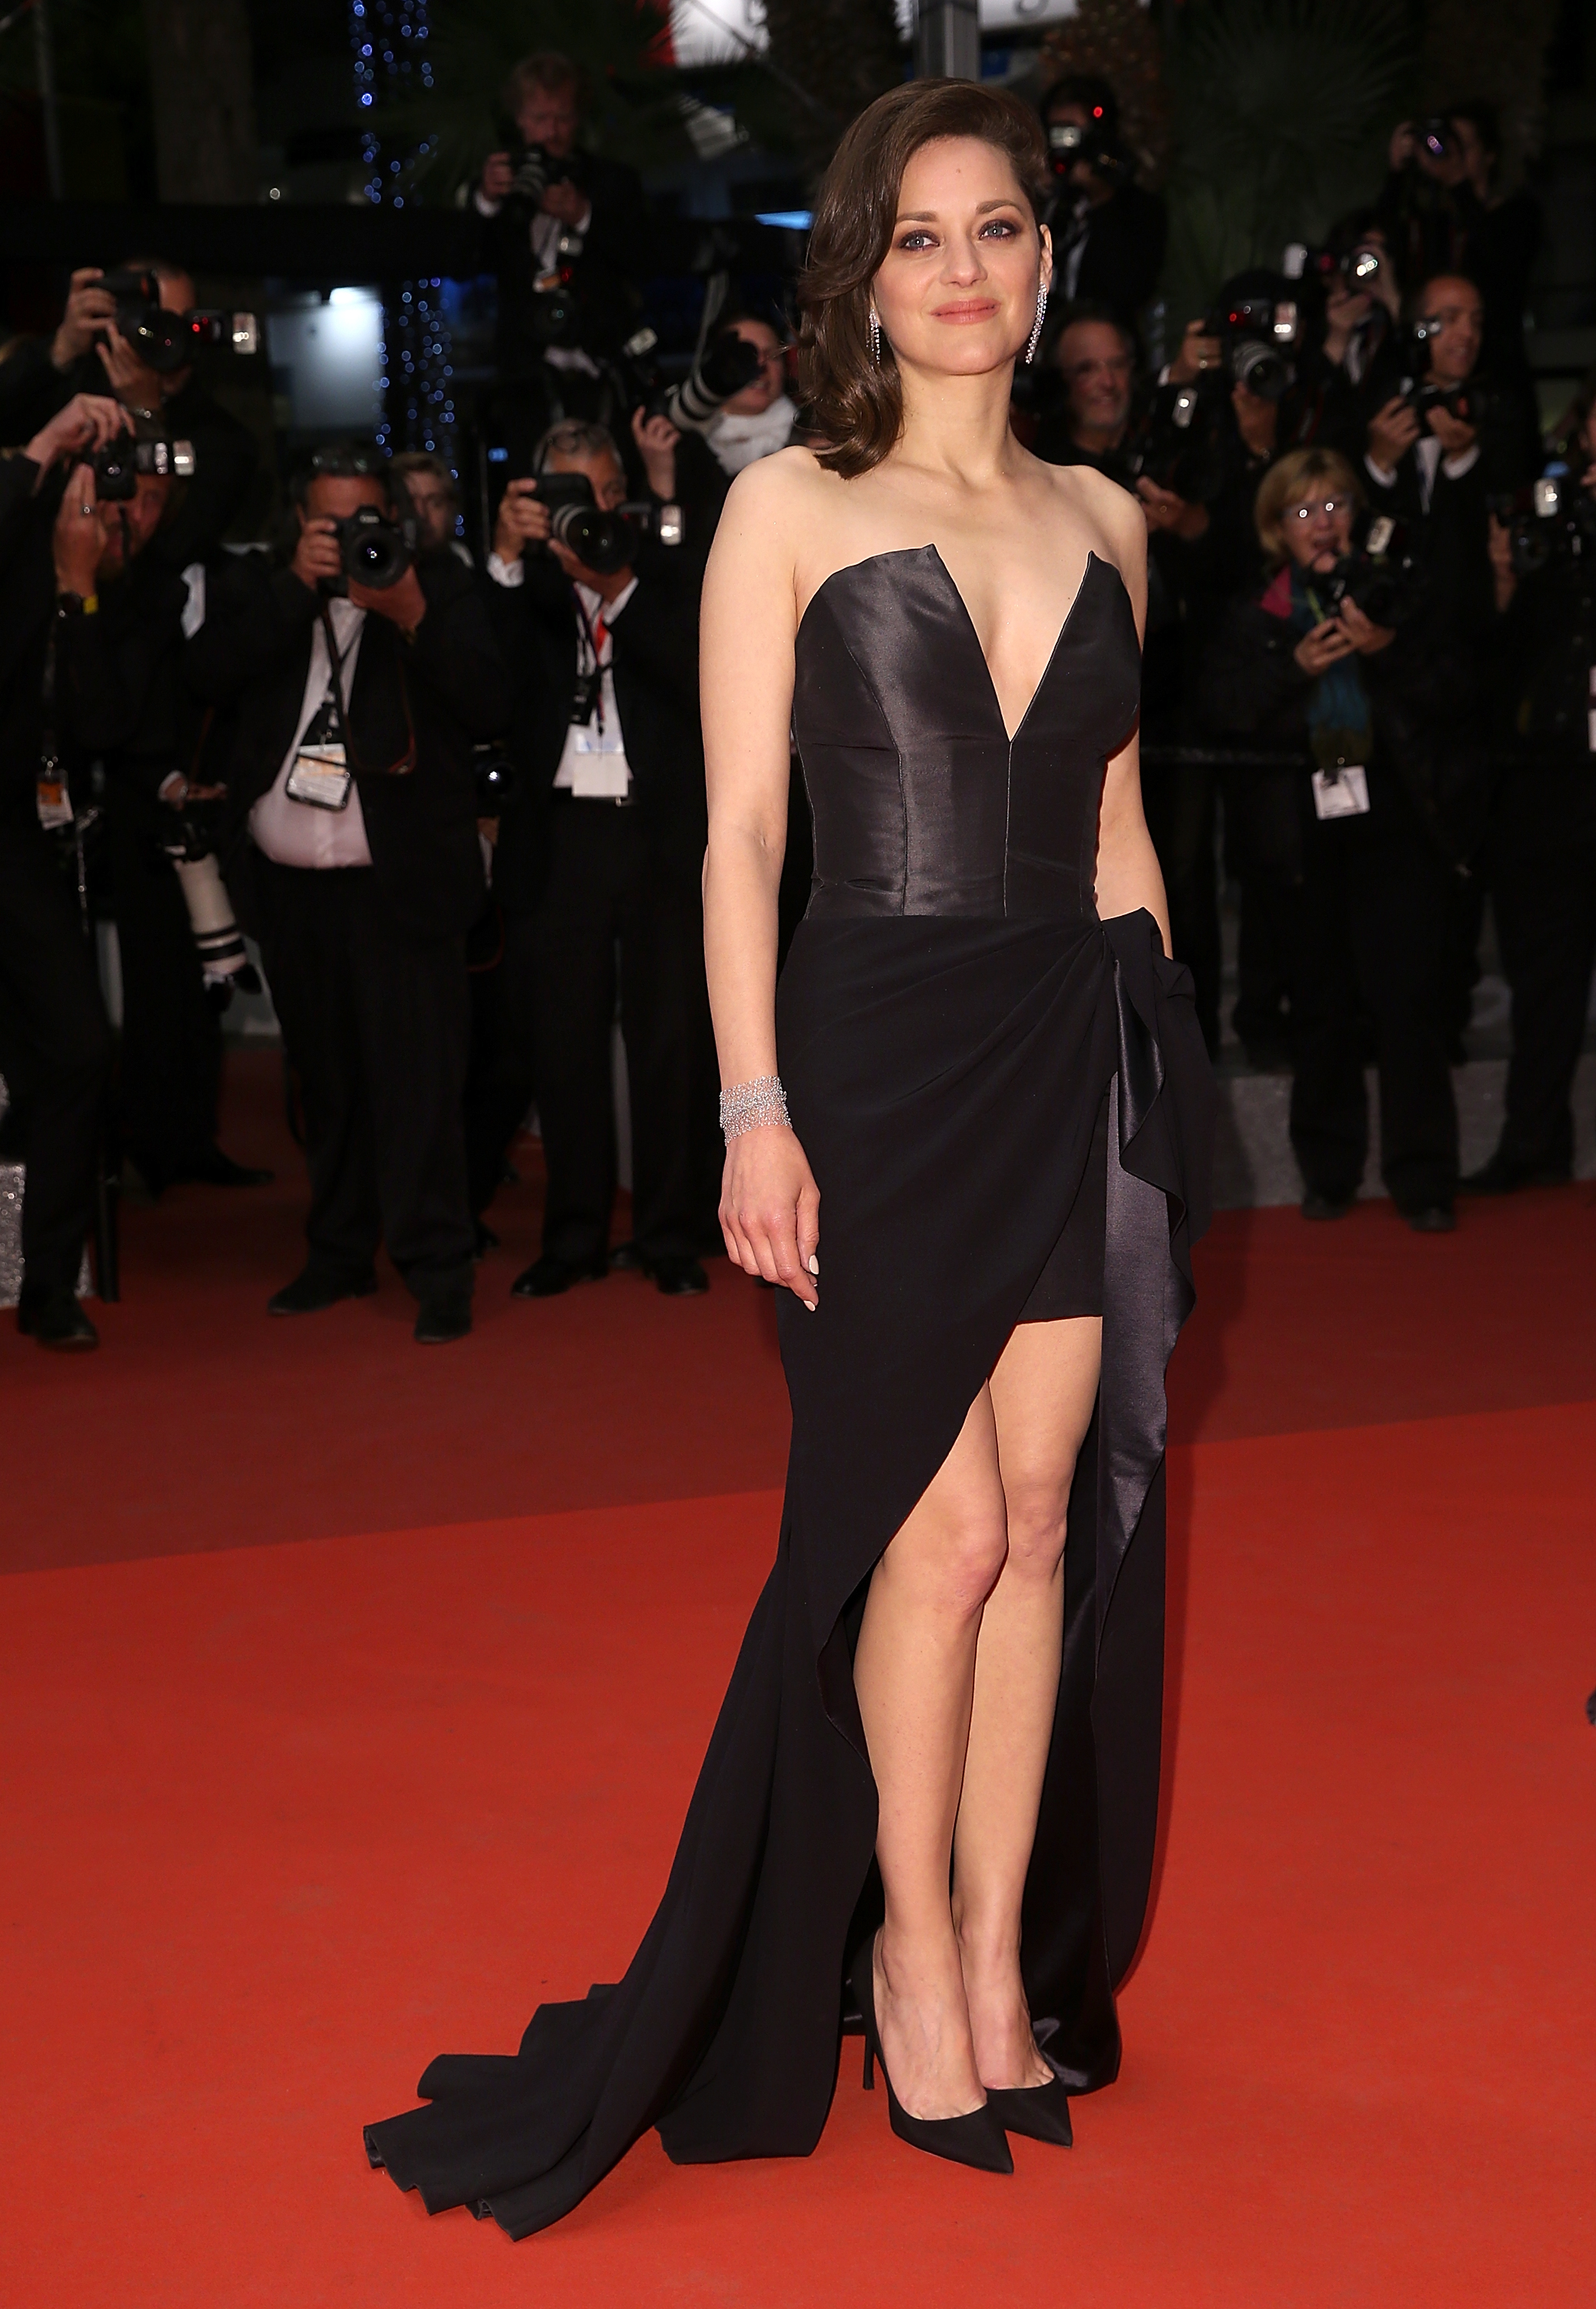 """CANNES, FRANCE - MAY 19: Marion Cotillard leaves the screening of """"It's Only The End Of The World (Juste La Fin Du Monde)"""" at the annual 69th Cannes Film Festival at Palais des Festivals on May 19, 2016 in Cannes, France. (Photo by Danny Martindale/FilmMagic)"""